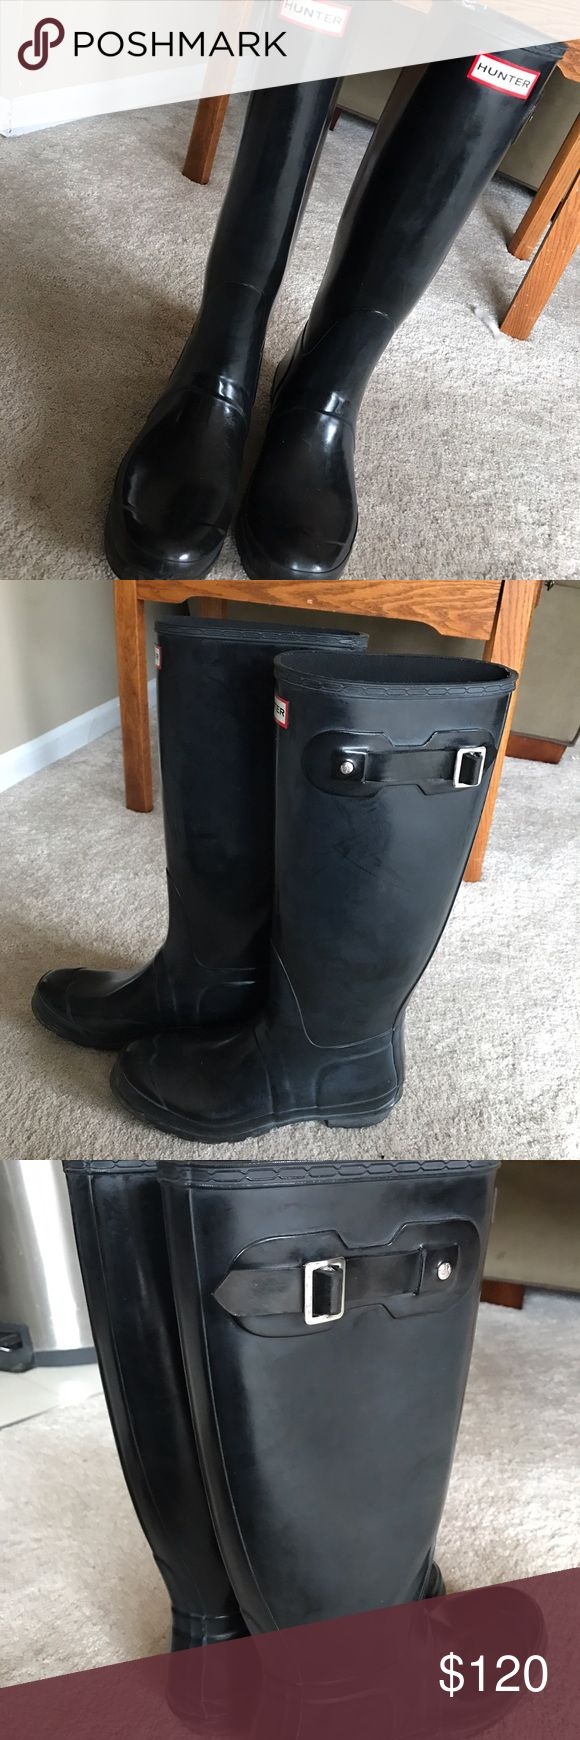 Size 9 glossy Hunters wonderful condition, slight white clouding but they can be buffed, worn a few times. nothing wrong with them i just want to get new wide calf Hunters. Hunter Boots Shoes Winter & Rain Boots